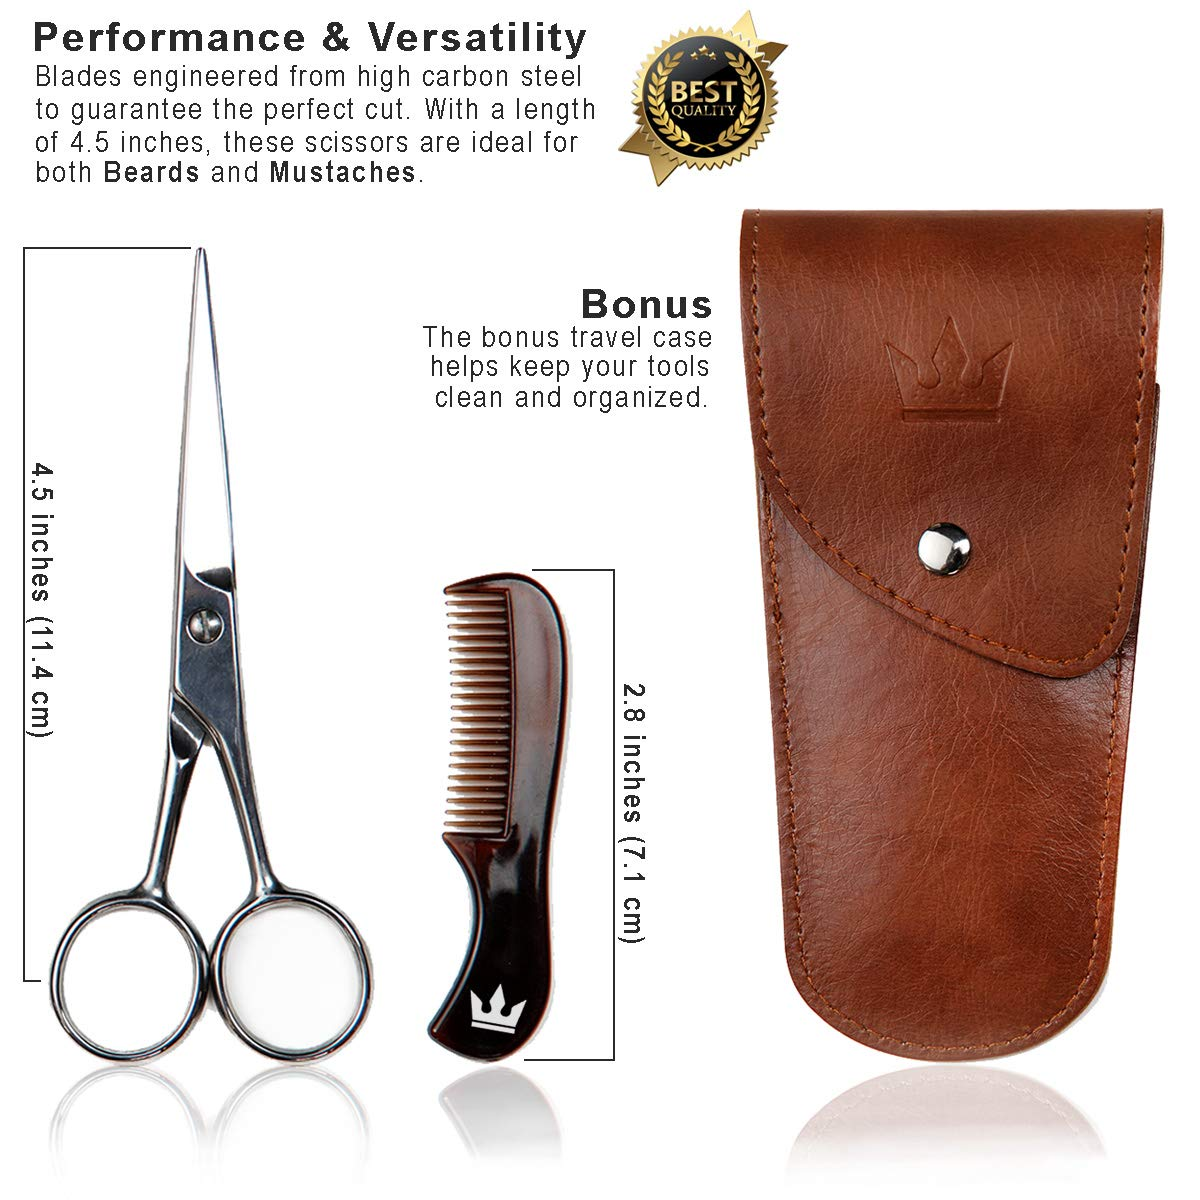 Premium Beard and Mustache Trimming Kit - Includes Scissor, Comb, and Hair Clippings Catcher & Grooming Cape Apron with Travel Bag